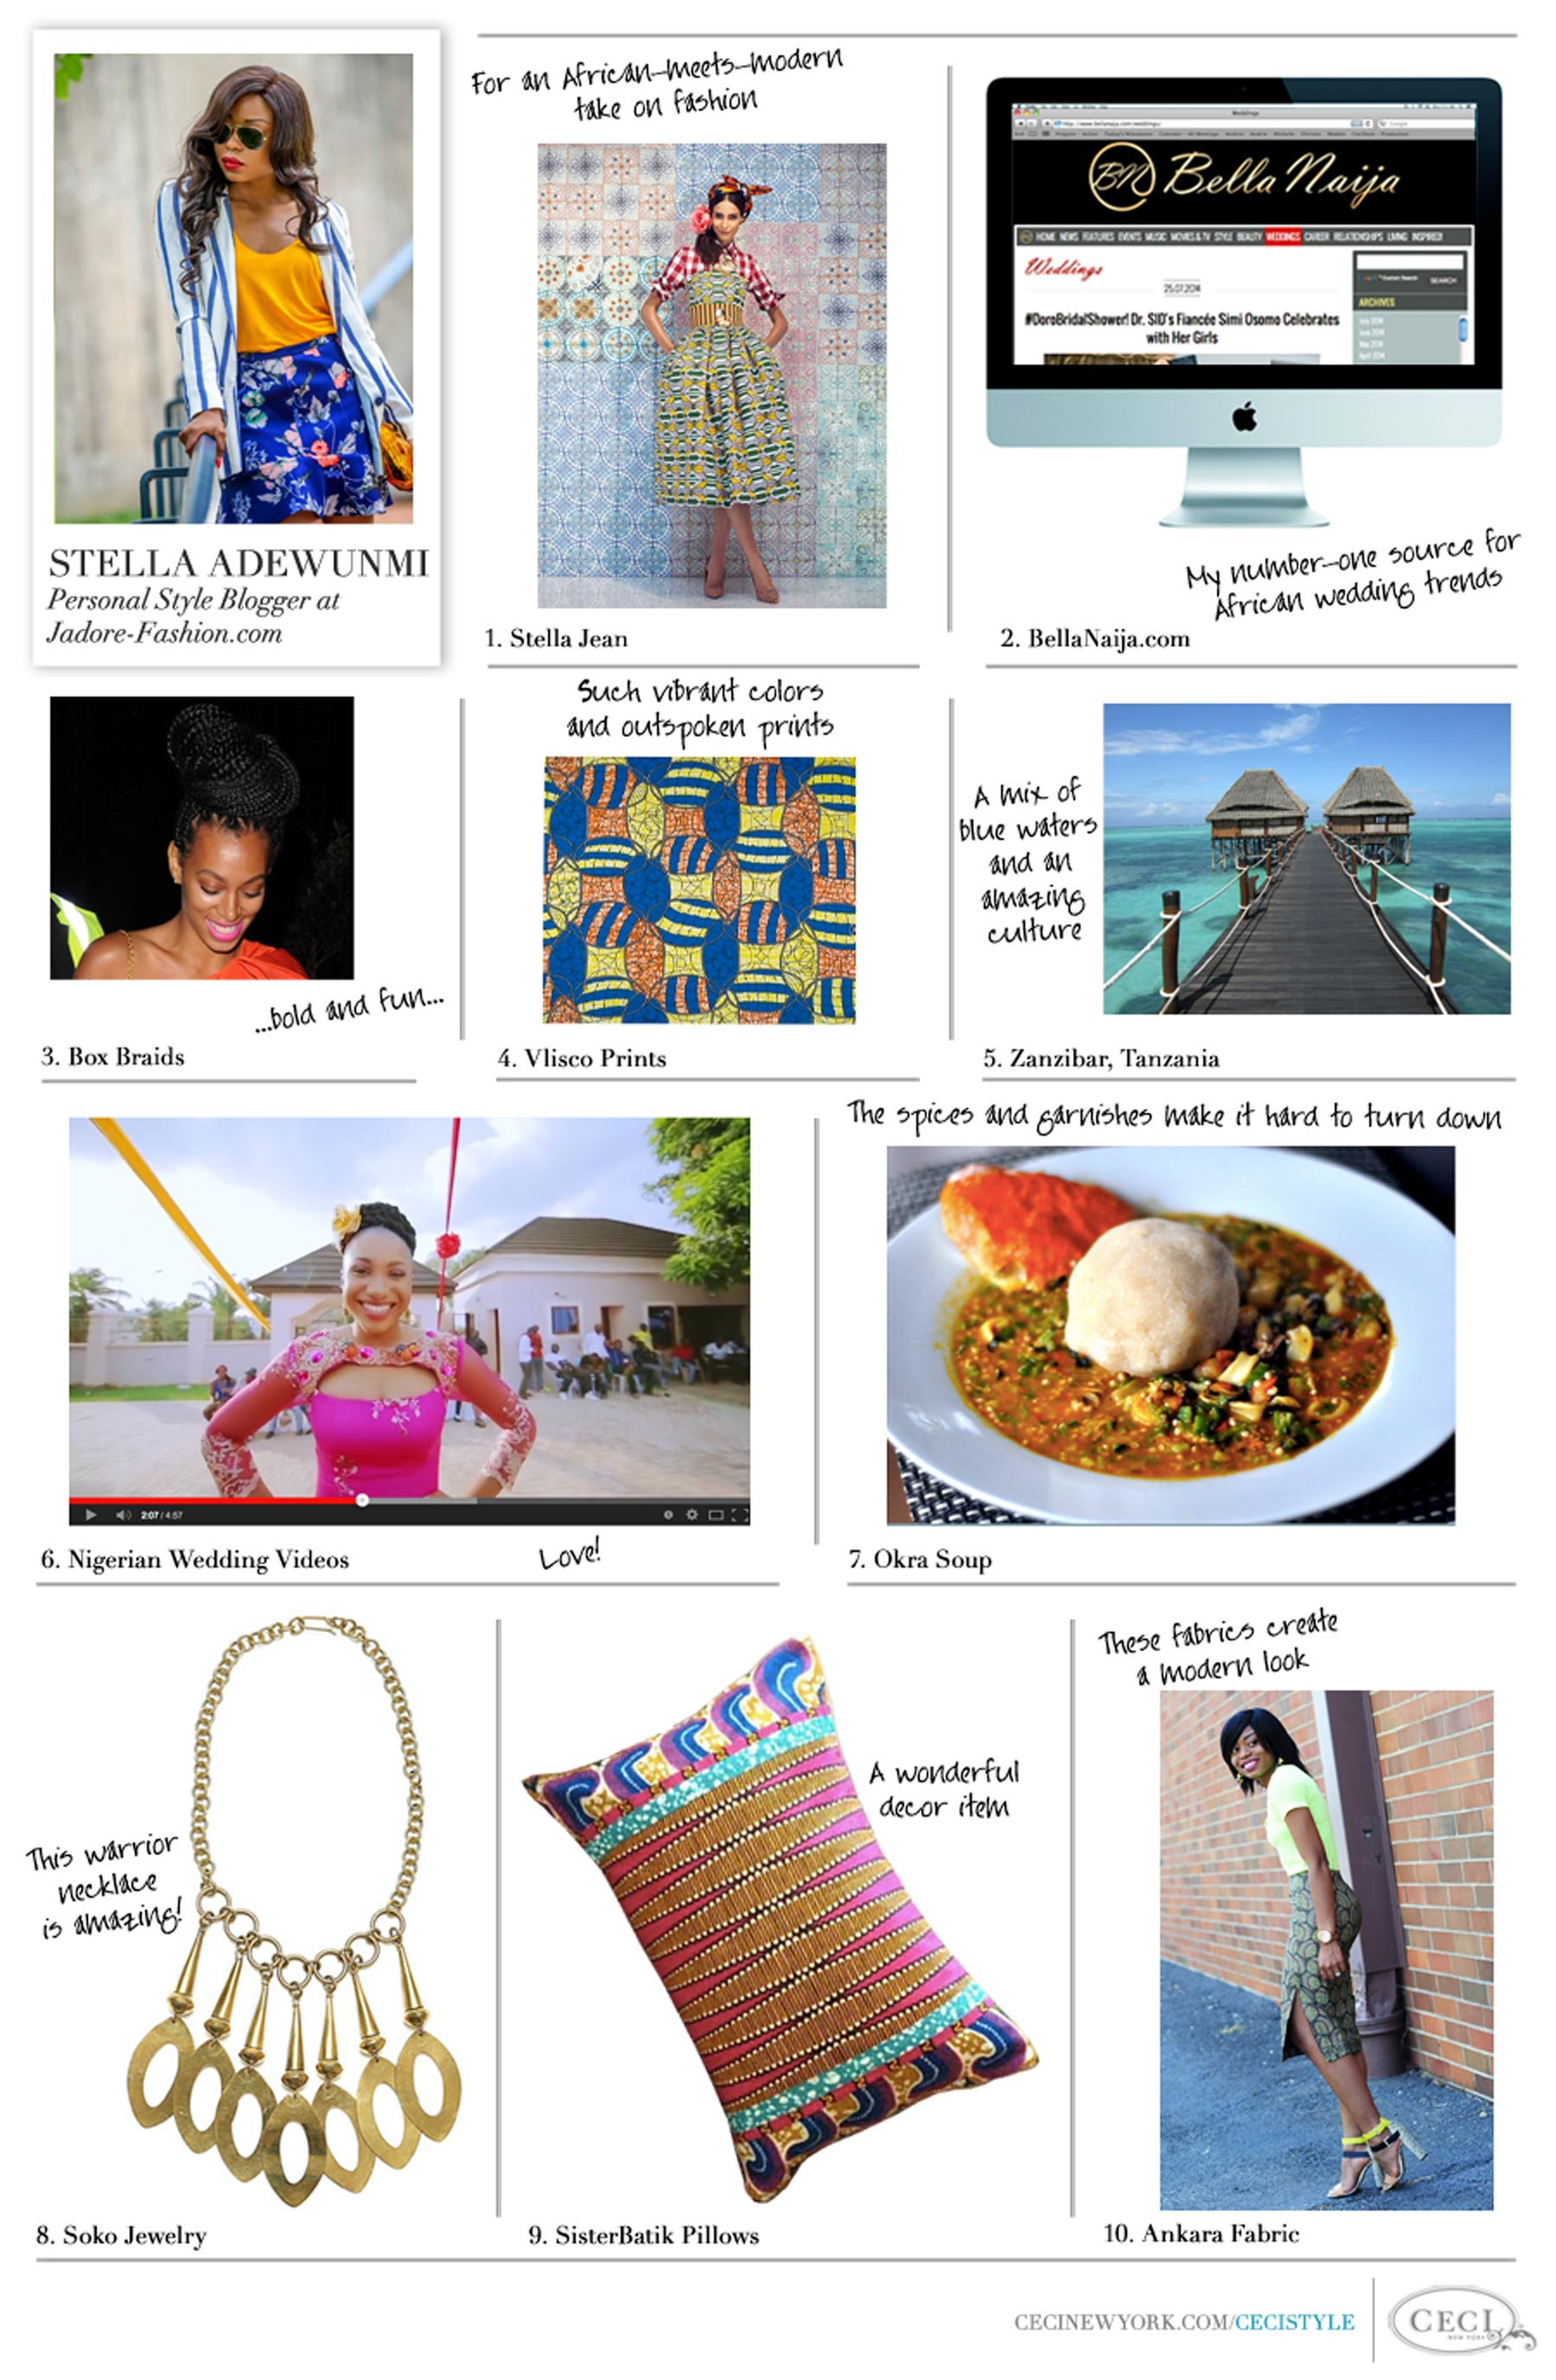 CeciStyle Magazine v210: Fabulous Finds Guest Editor - Stella Adewunmi from Jadore-Fashion Blog